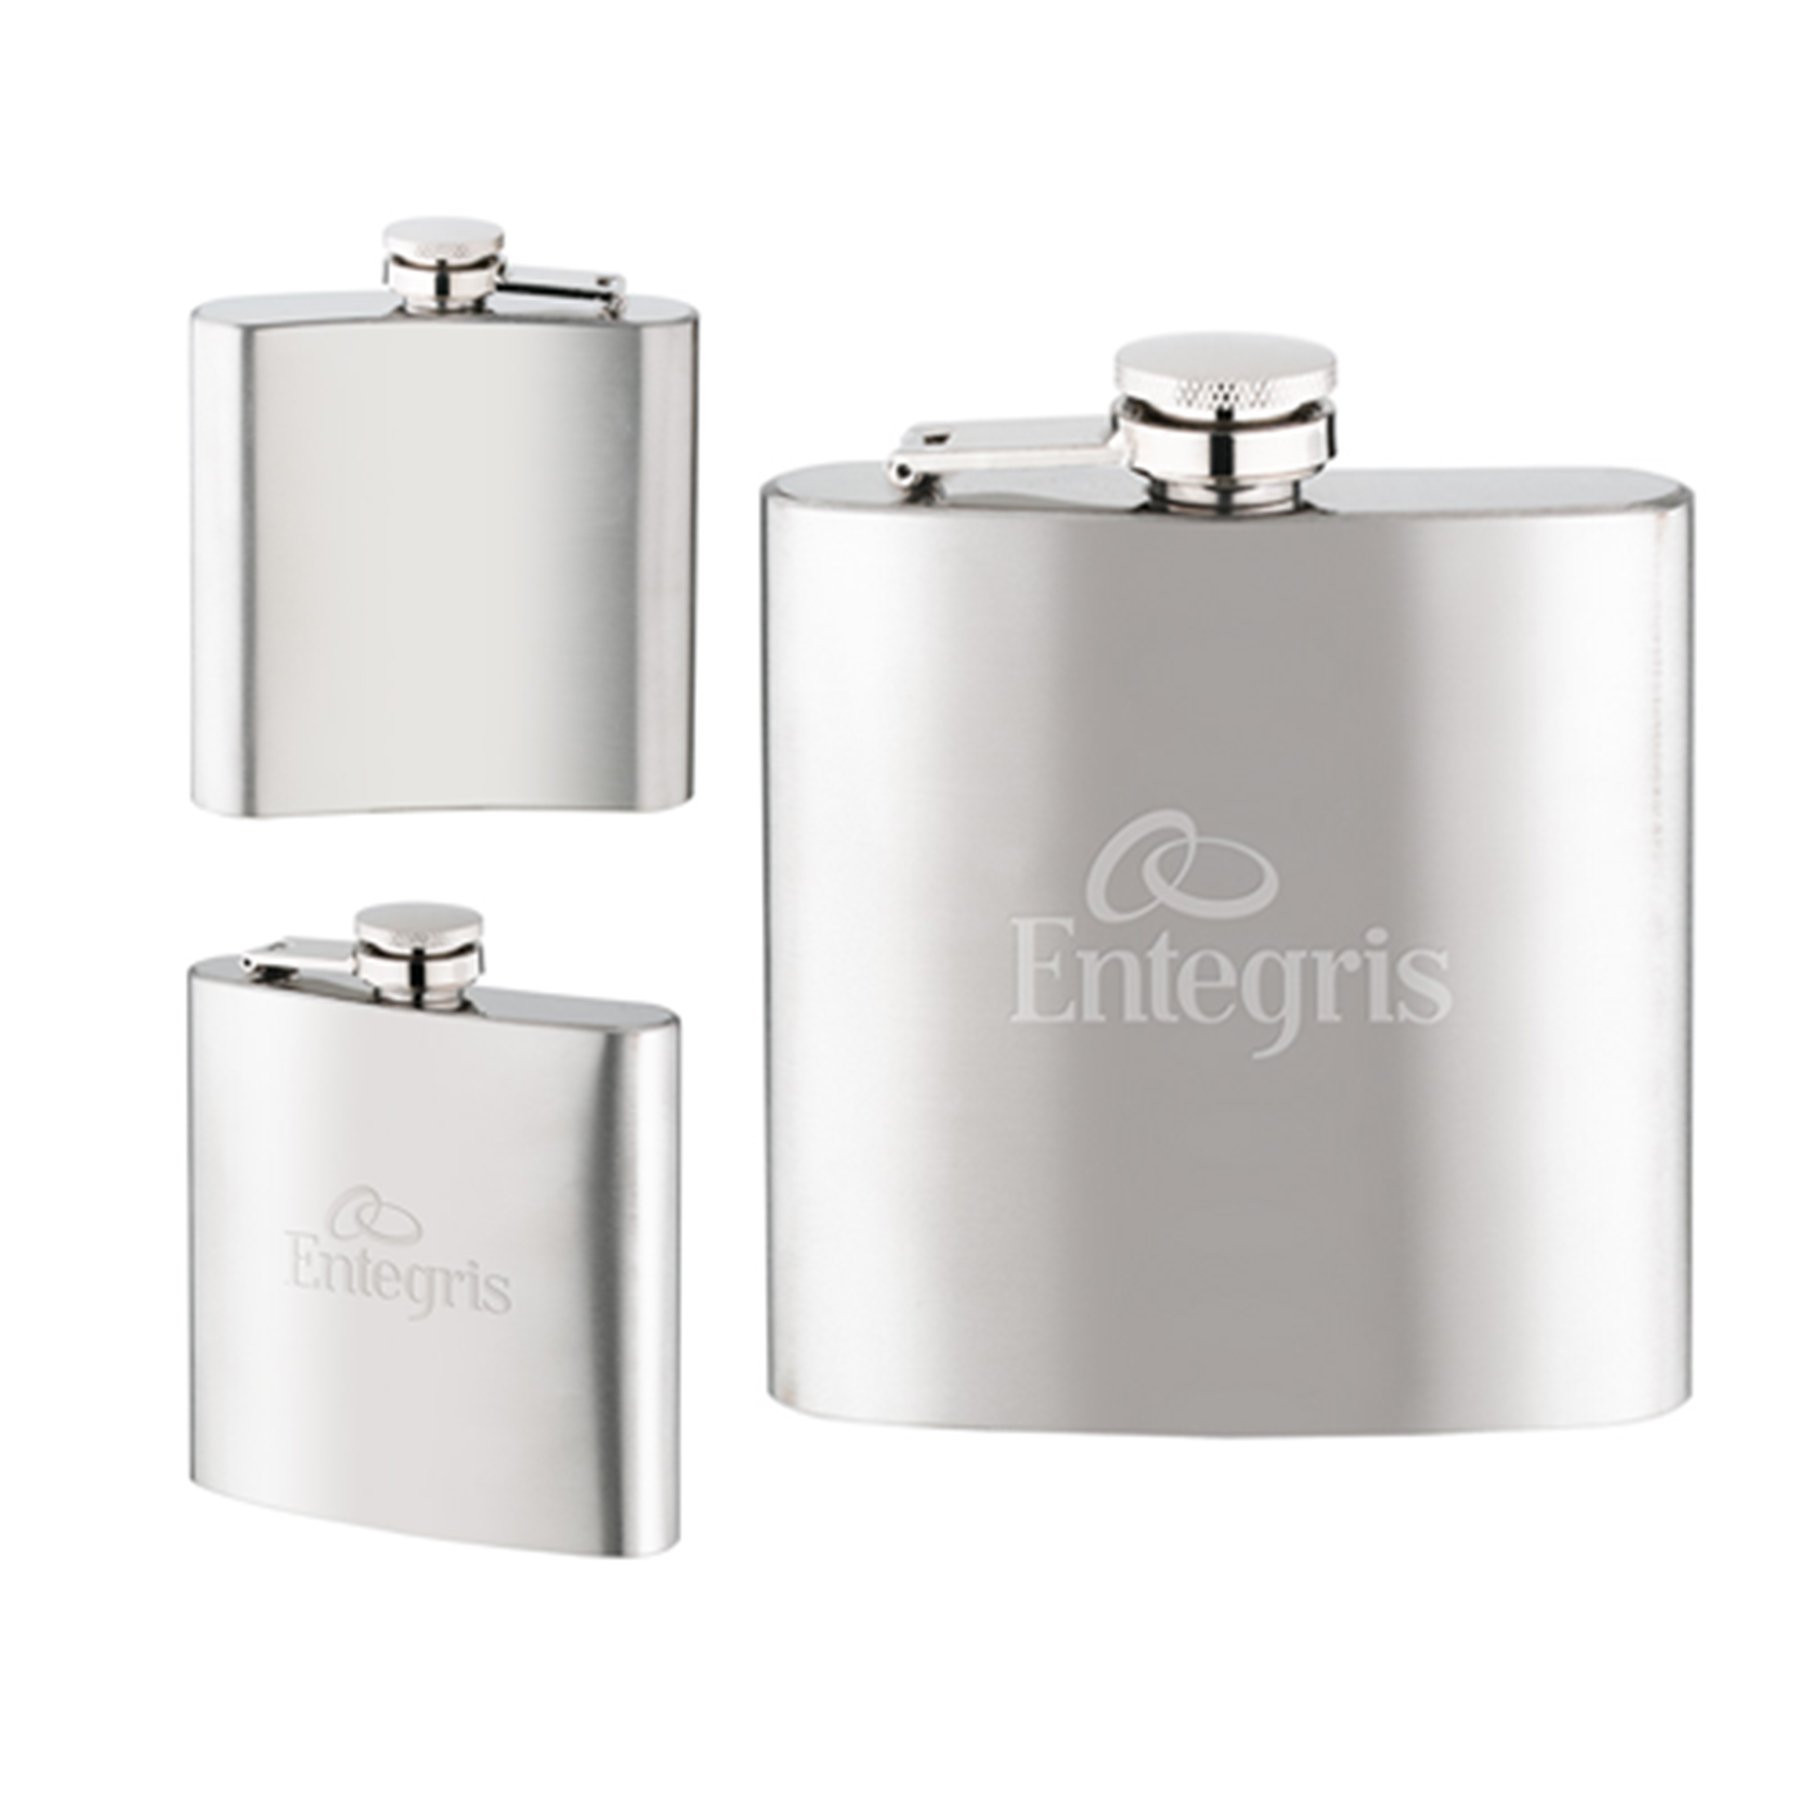 Brushed Metal Stainless Steel Hip Flask